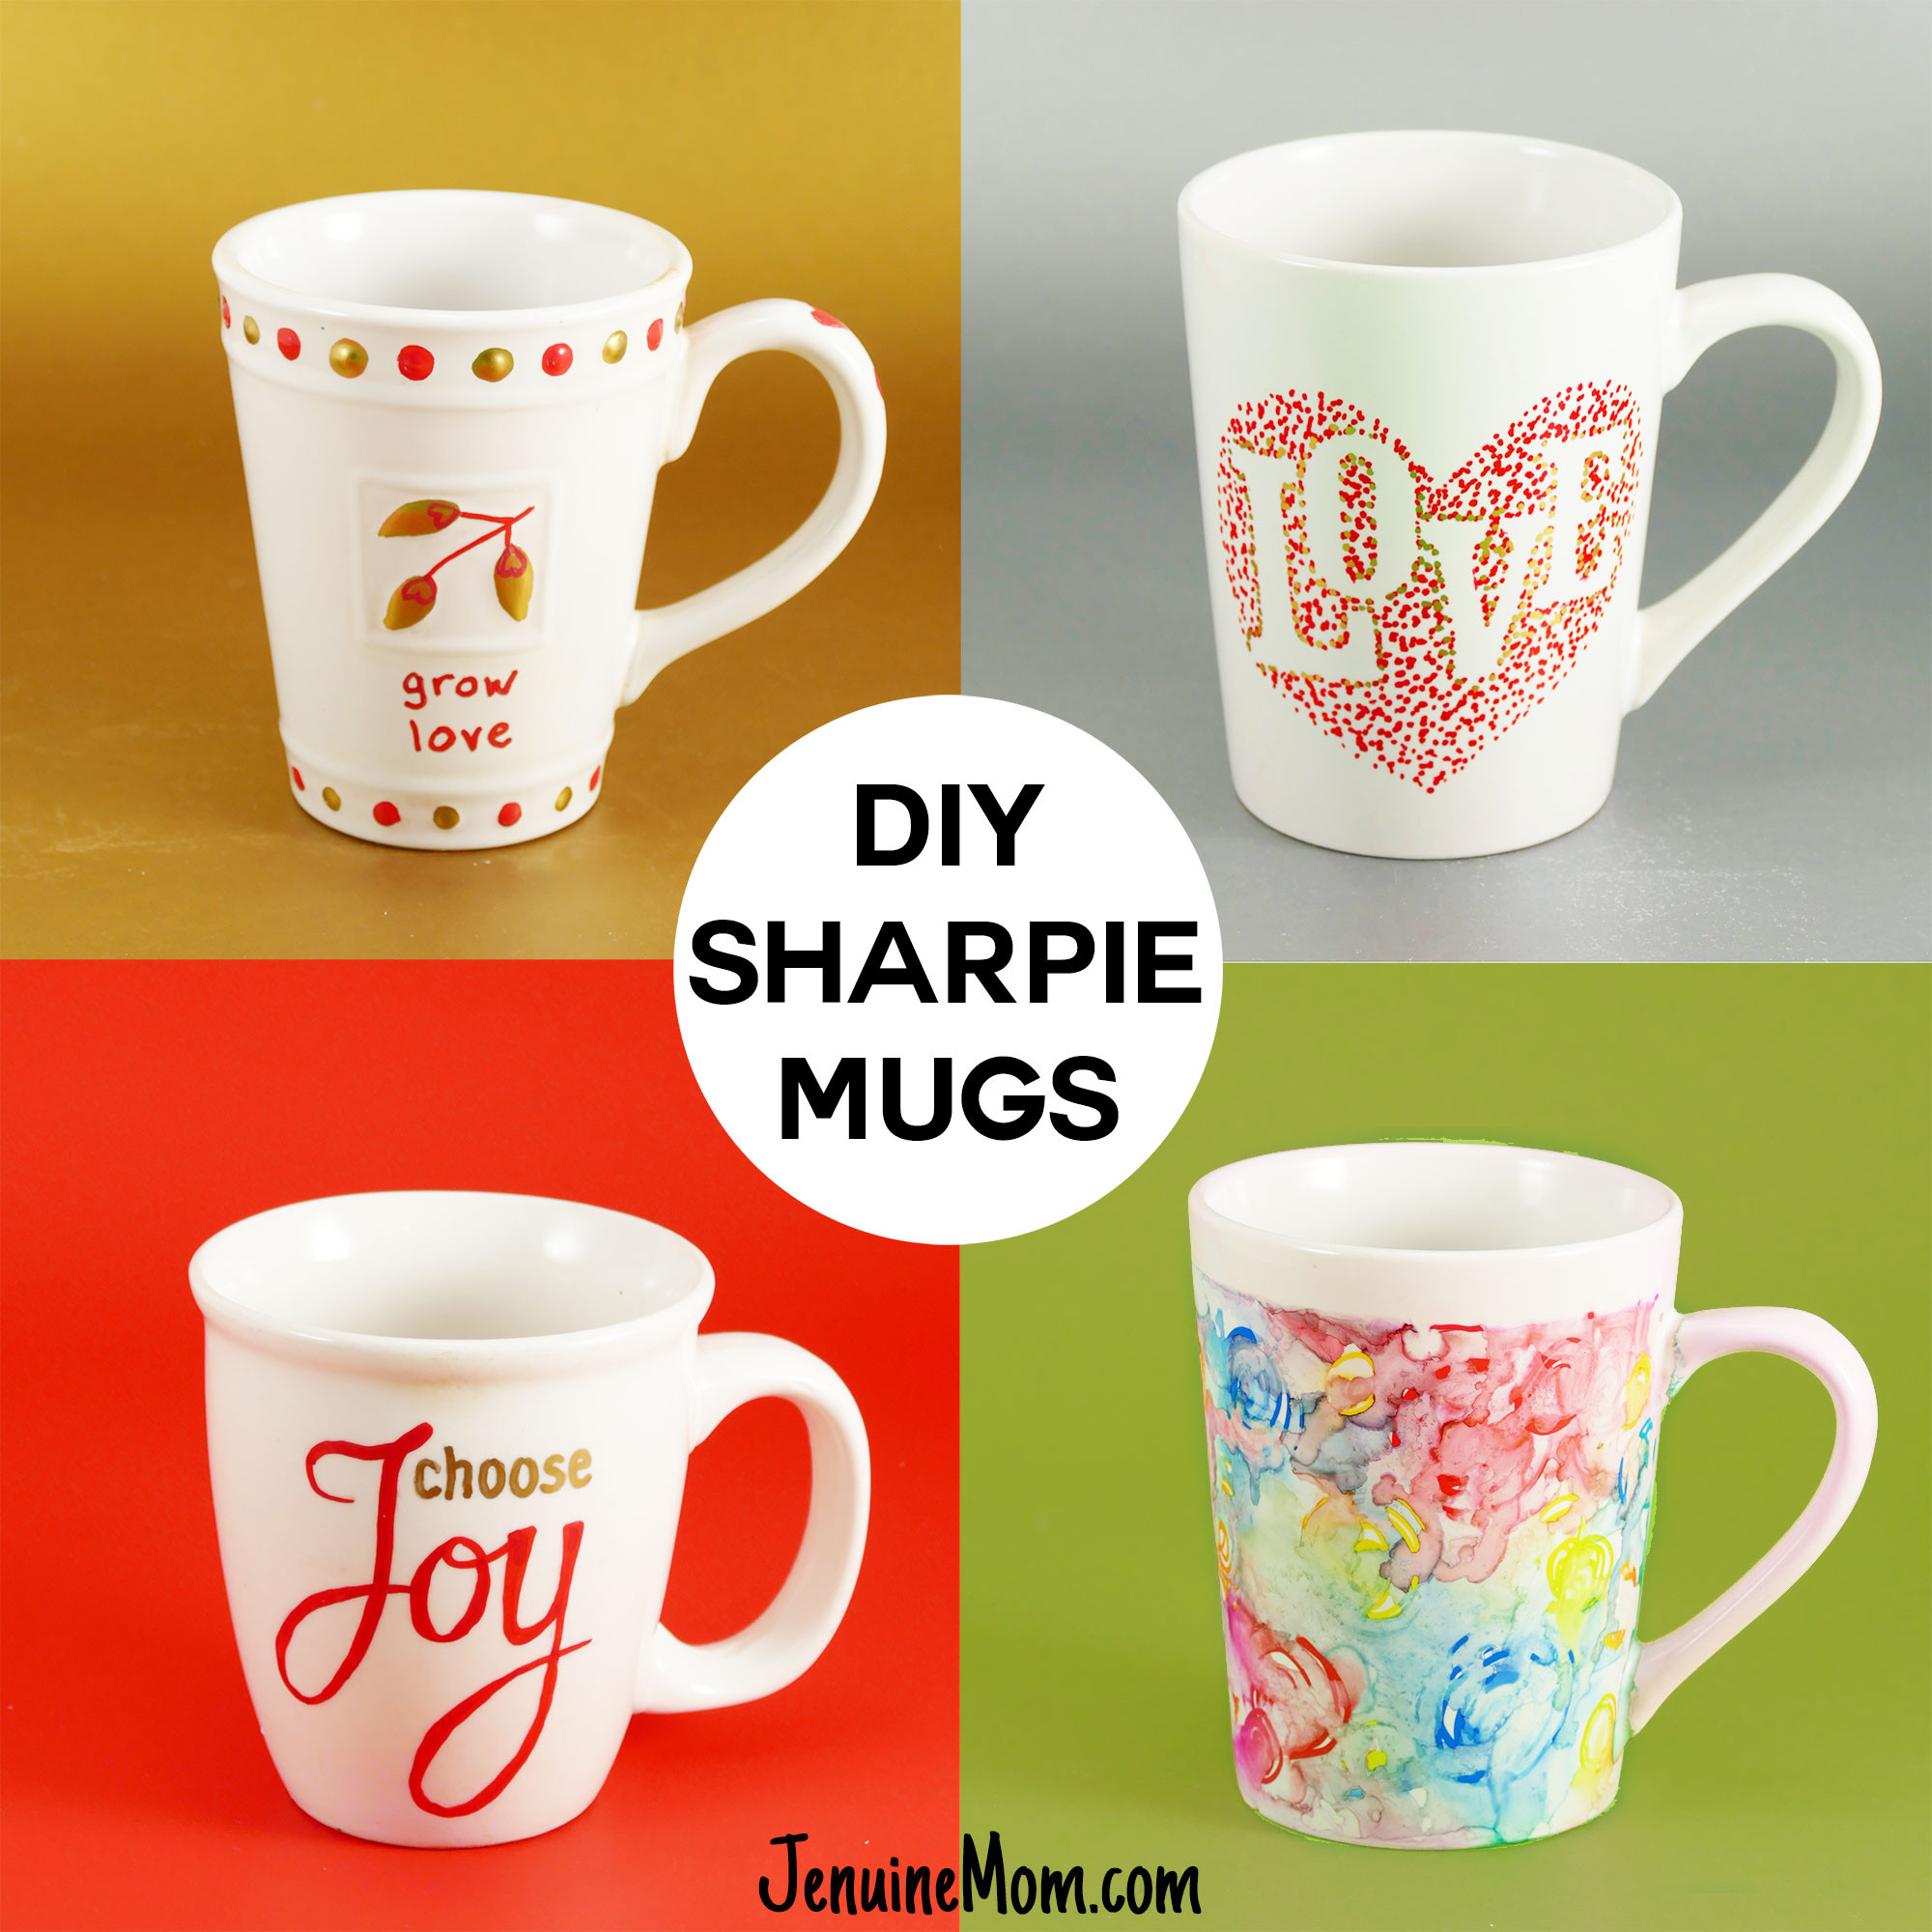 Best ideas about DIY Personalized Mugs . Save or Pin DIY Sharpie Mugs for Easy Personalized Gifts Jennifer Maker Now.